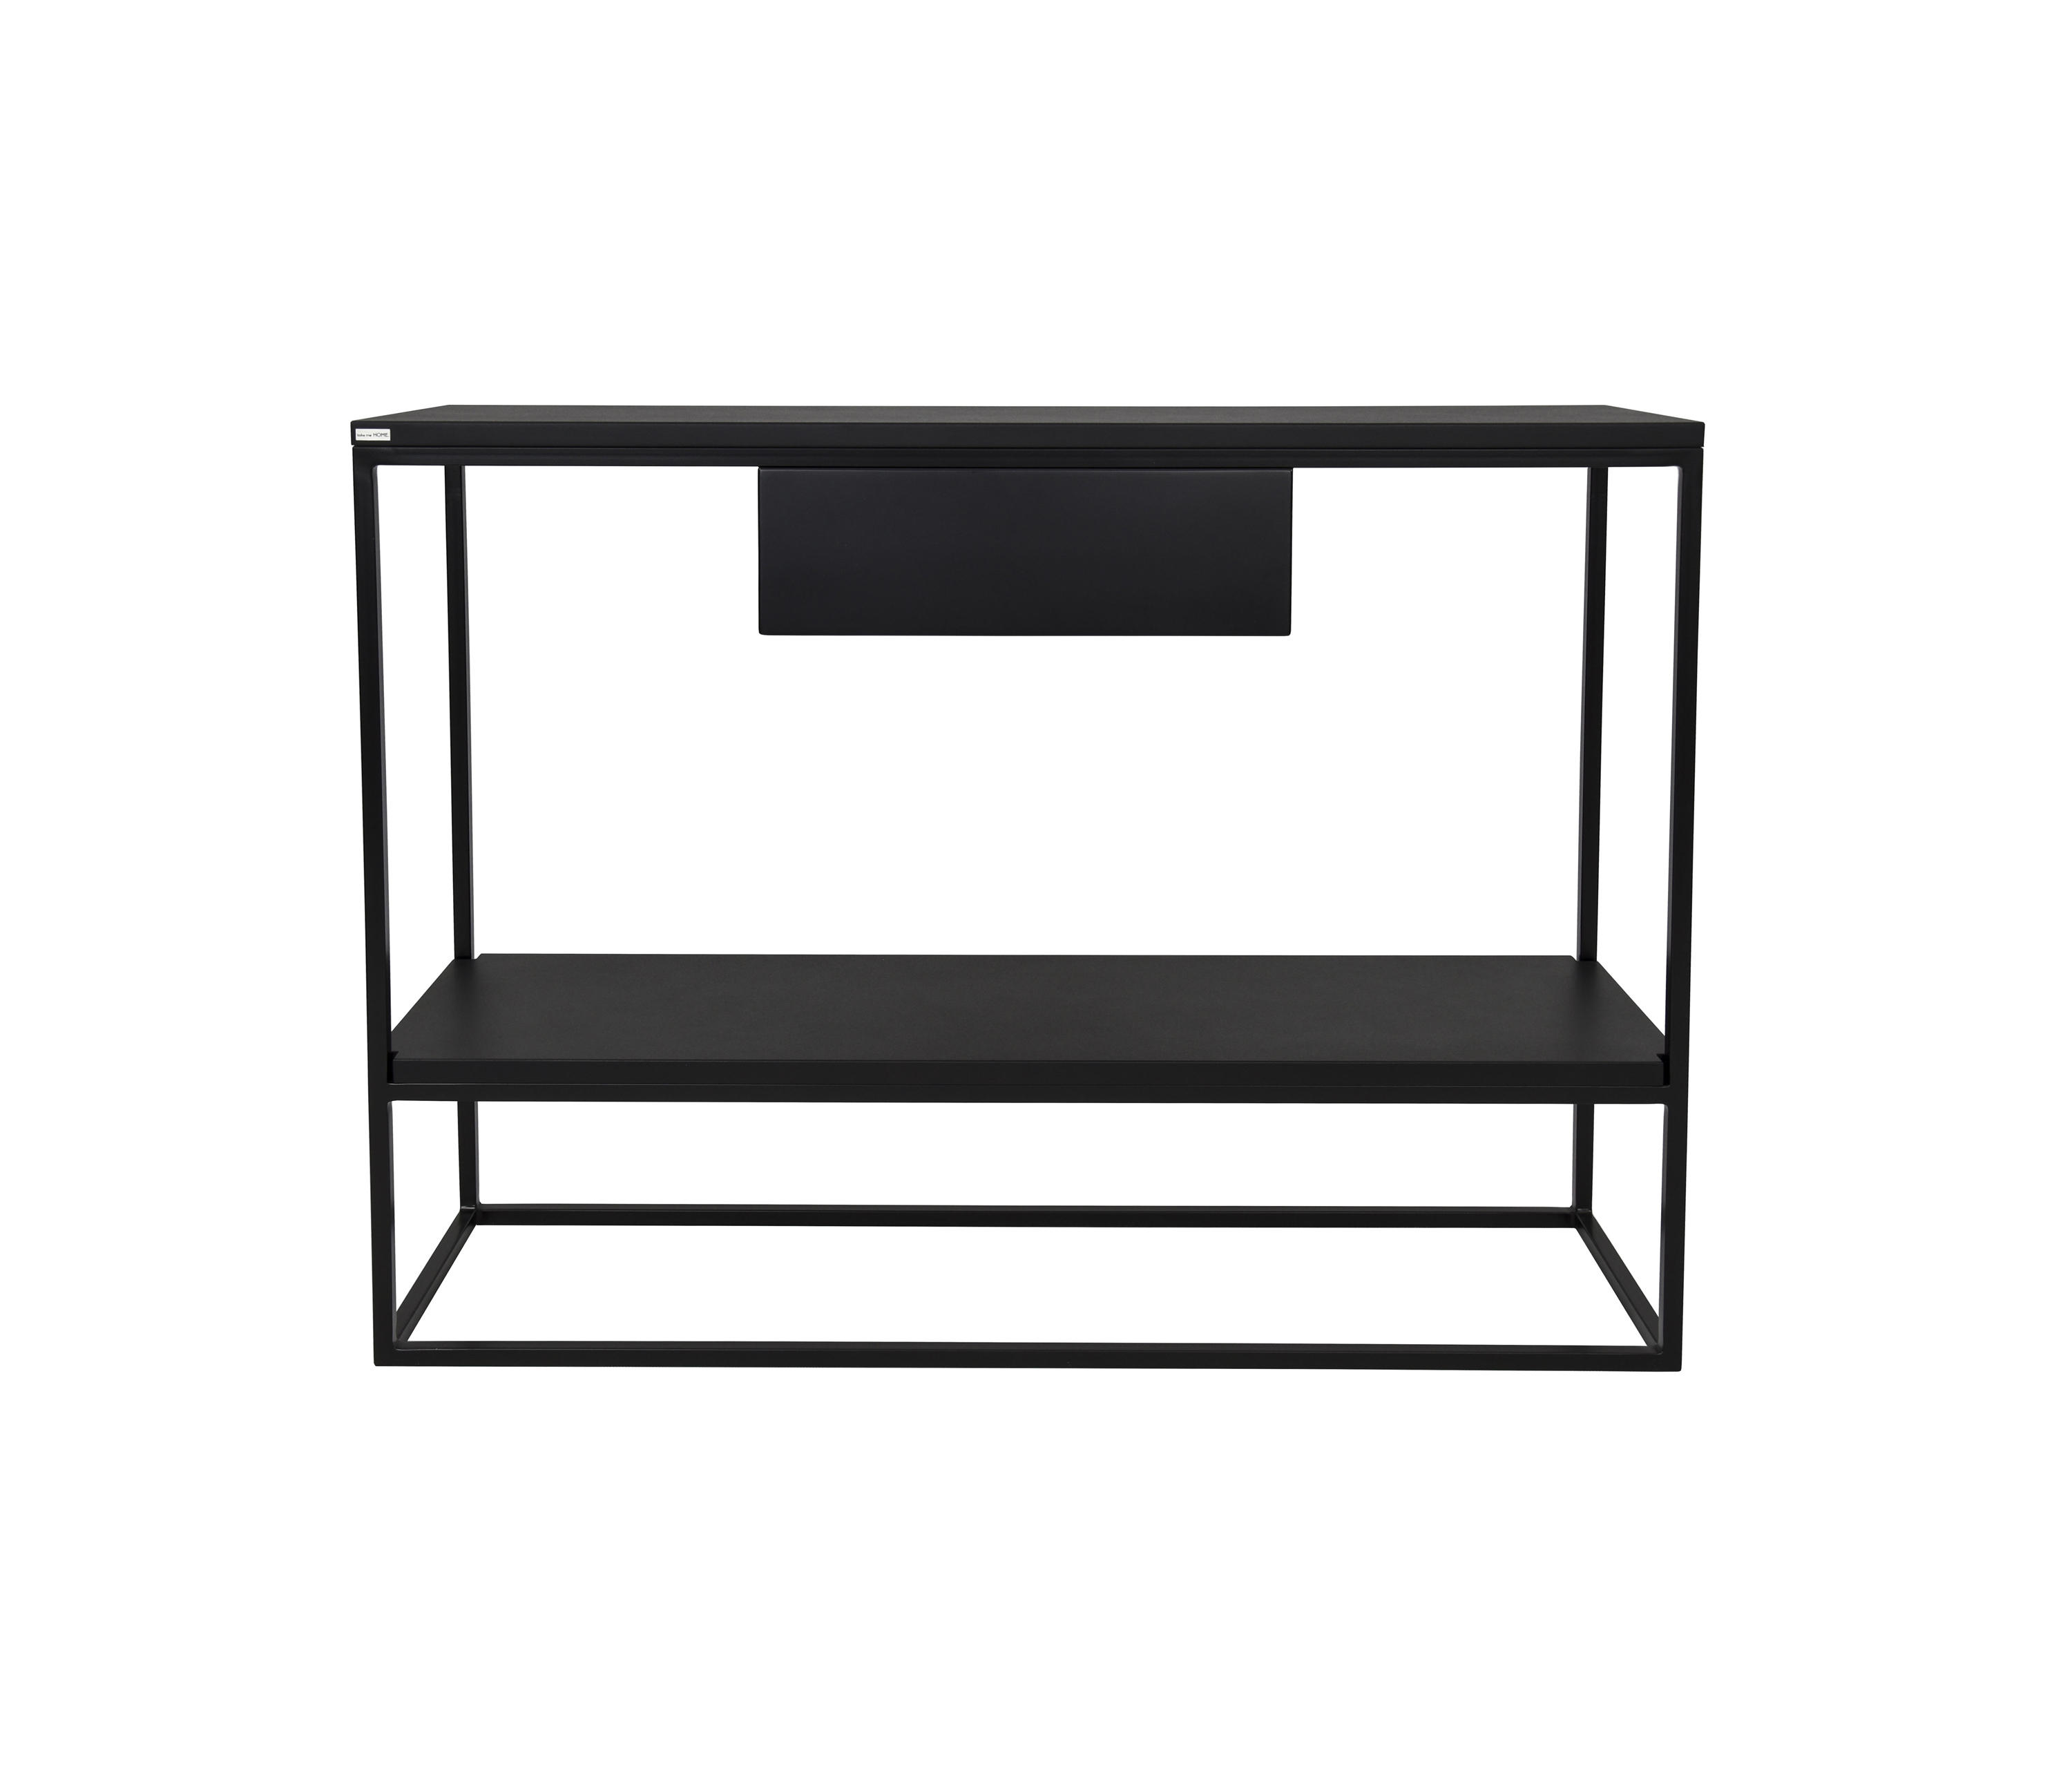 SKINNY SCHUBLADE UND TABLAR Console tables from take me HOME